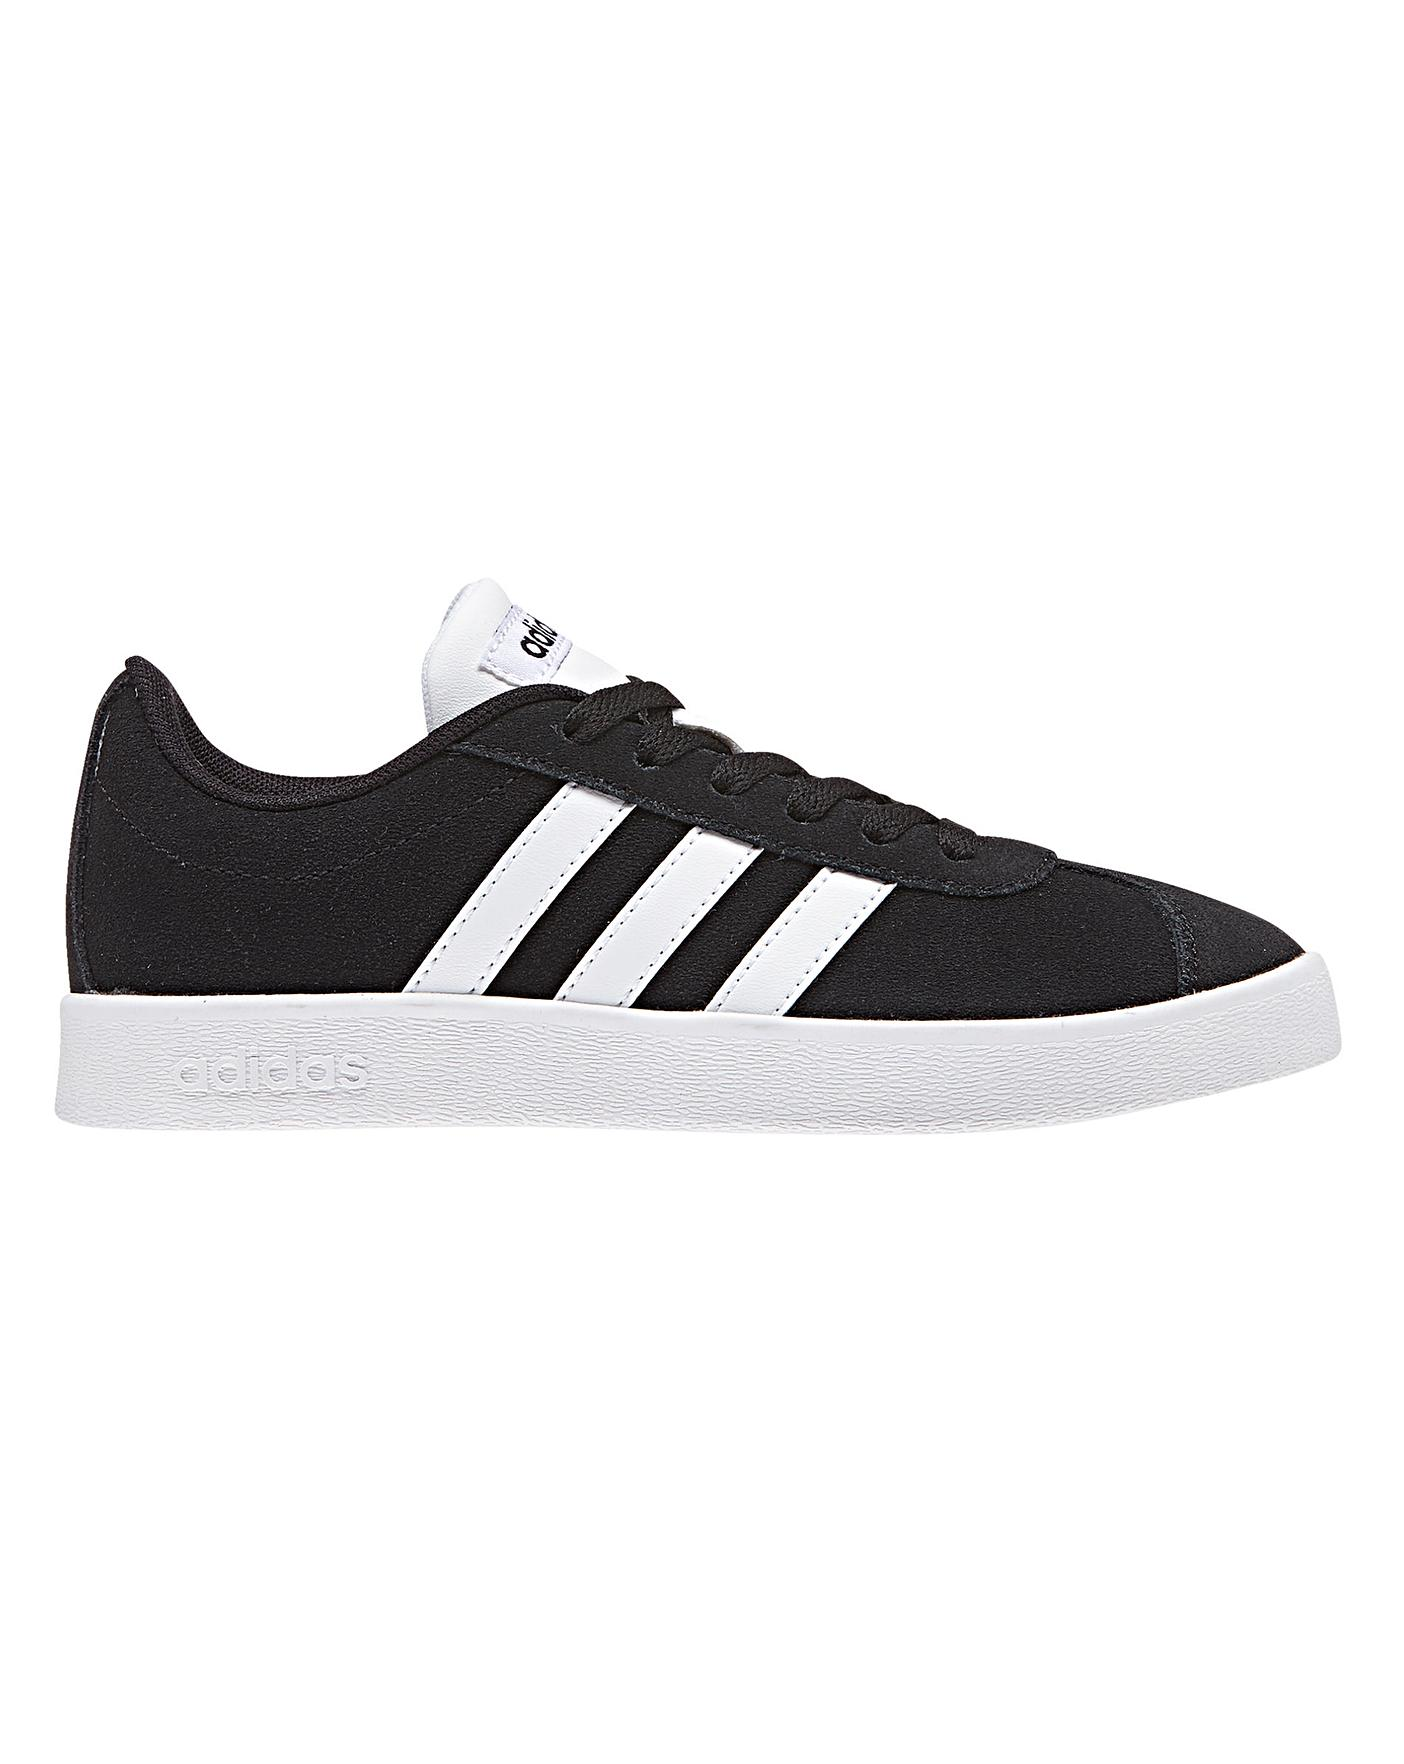 9485736a6773 Adidas VL Court 2.0 Kids Trainers